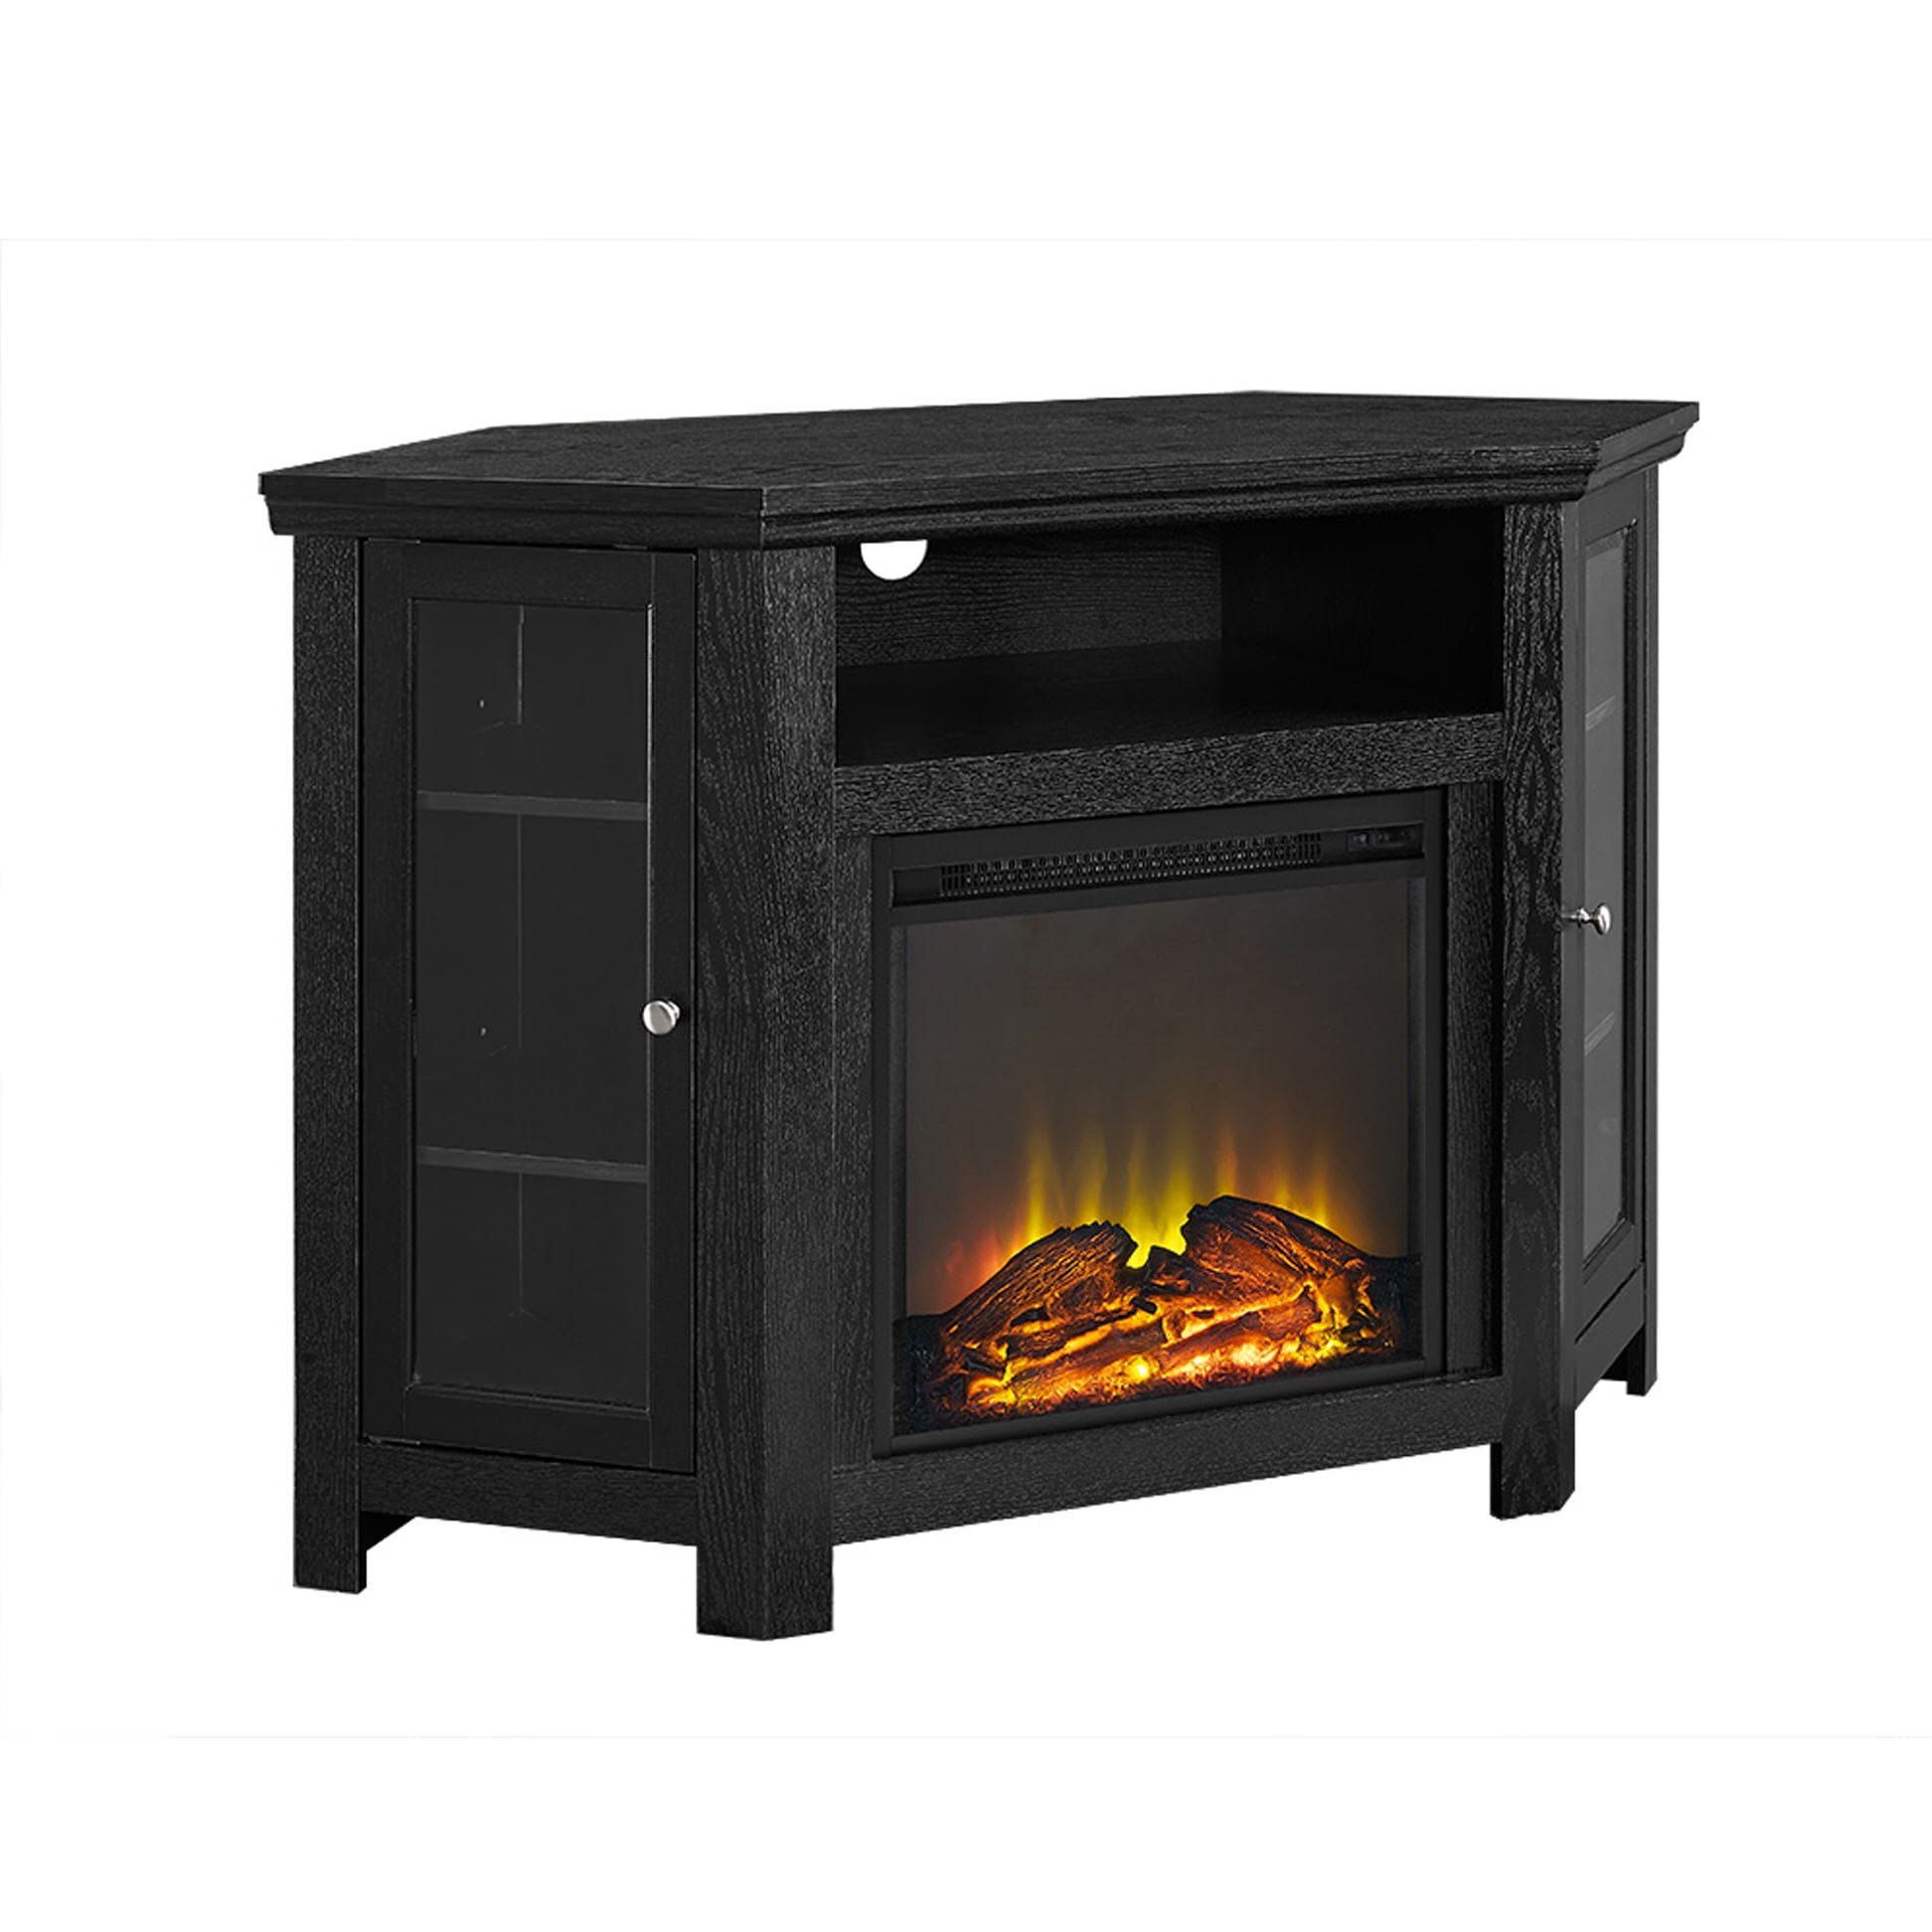 Jackson 48 Inch Corner Fireplace TV Stand Black By Walker Edison